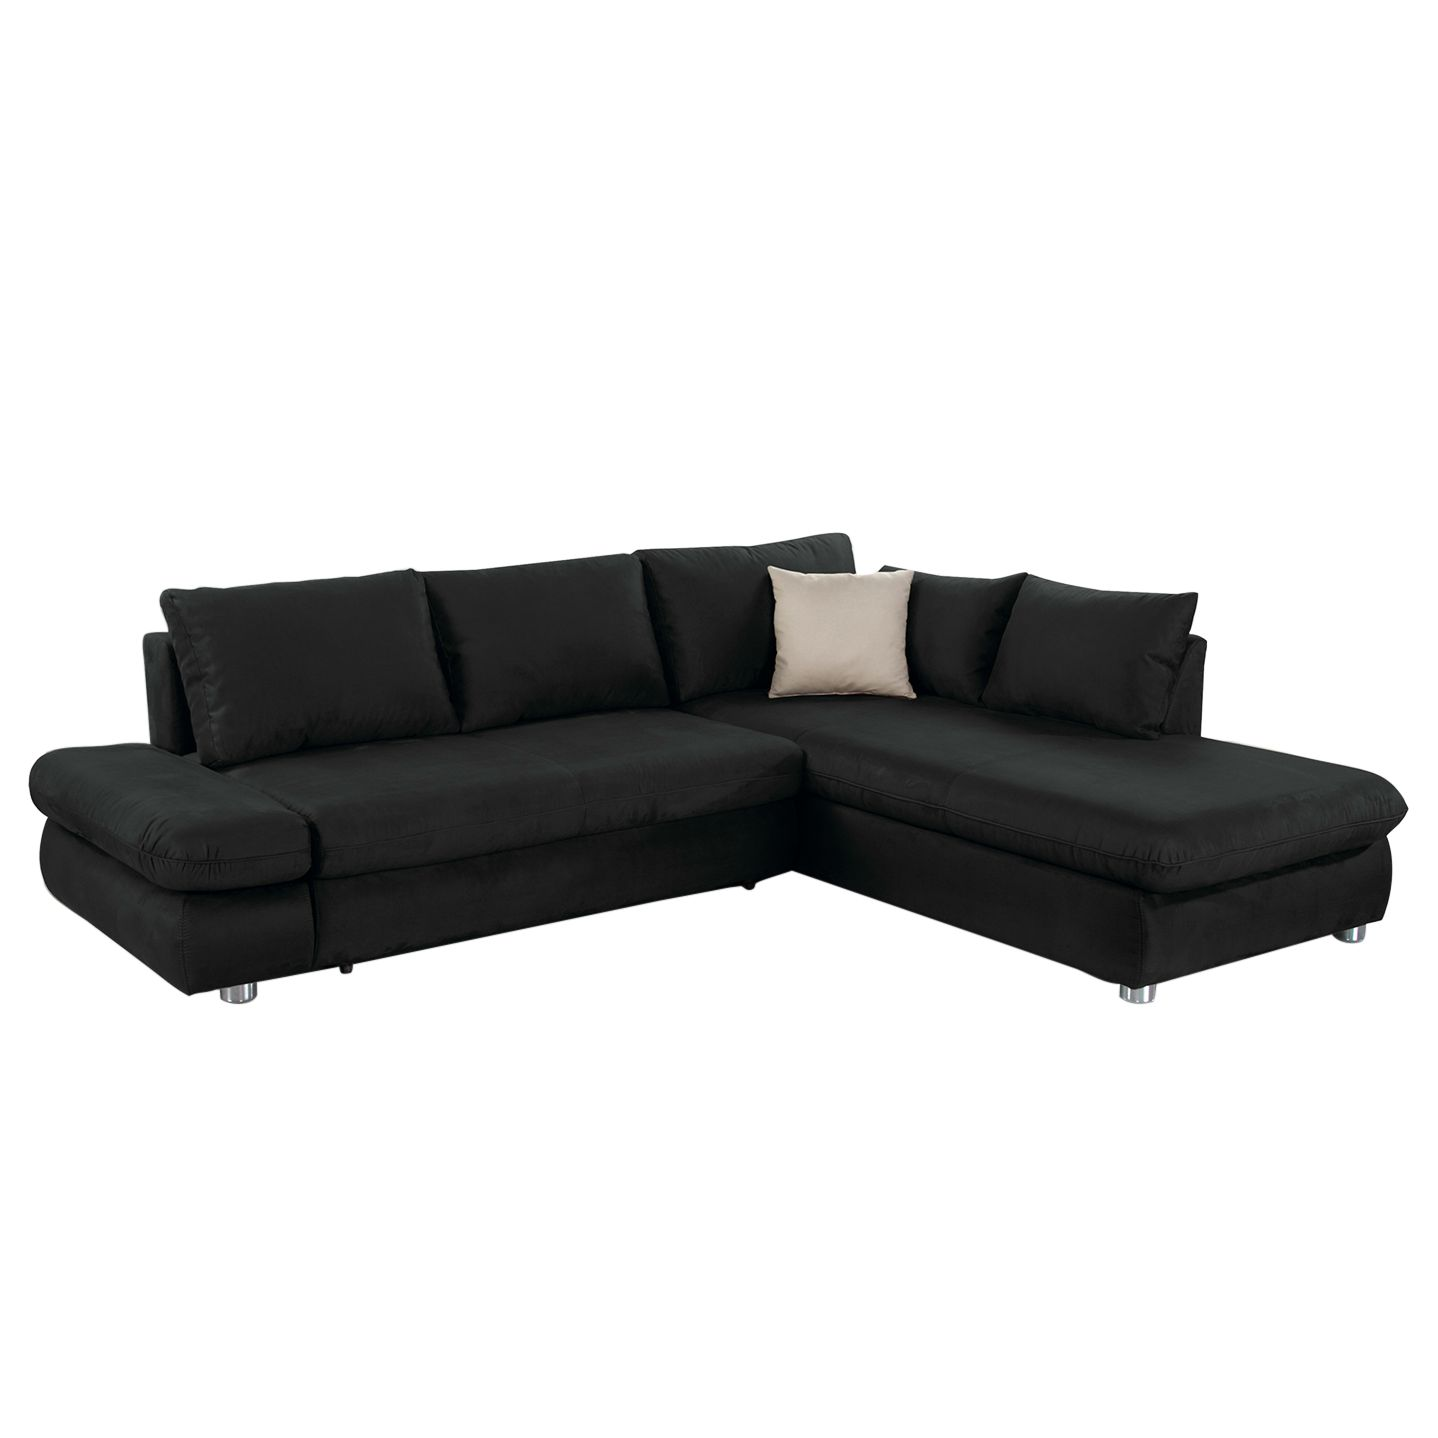 design couch g nstig kaufen. Black Bedroom Furniture Sets. Home Design Ideas